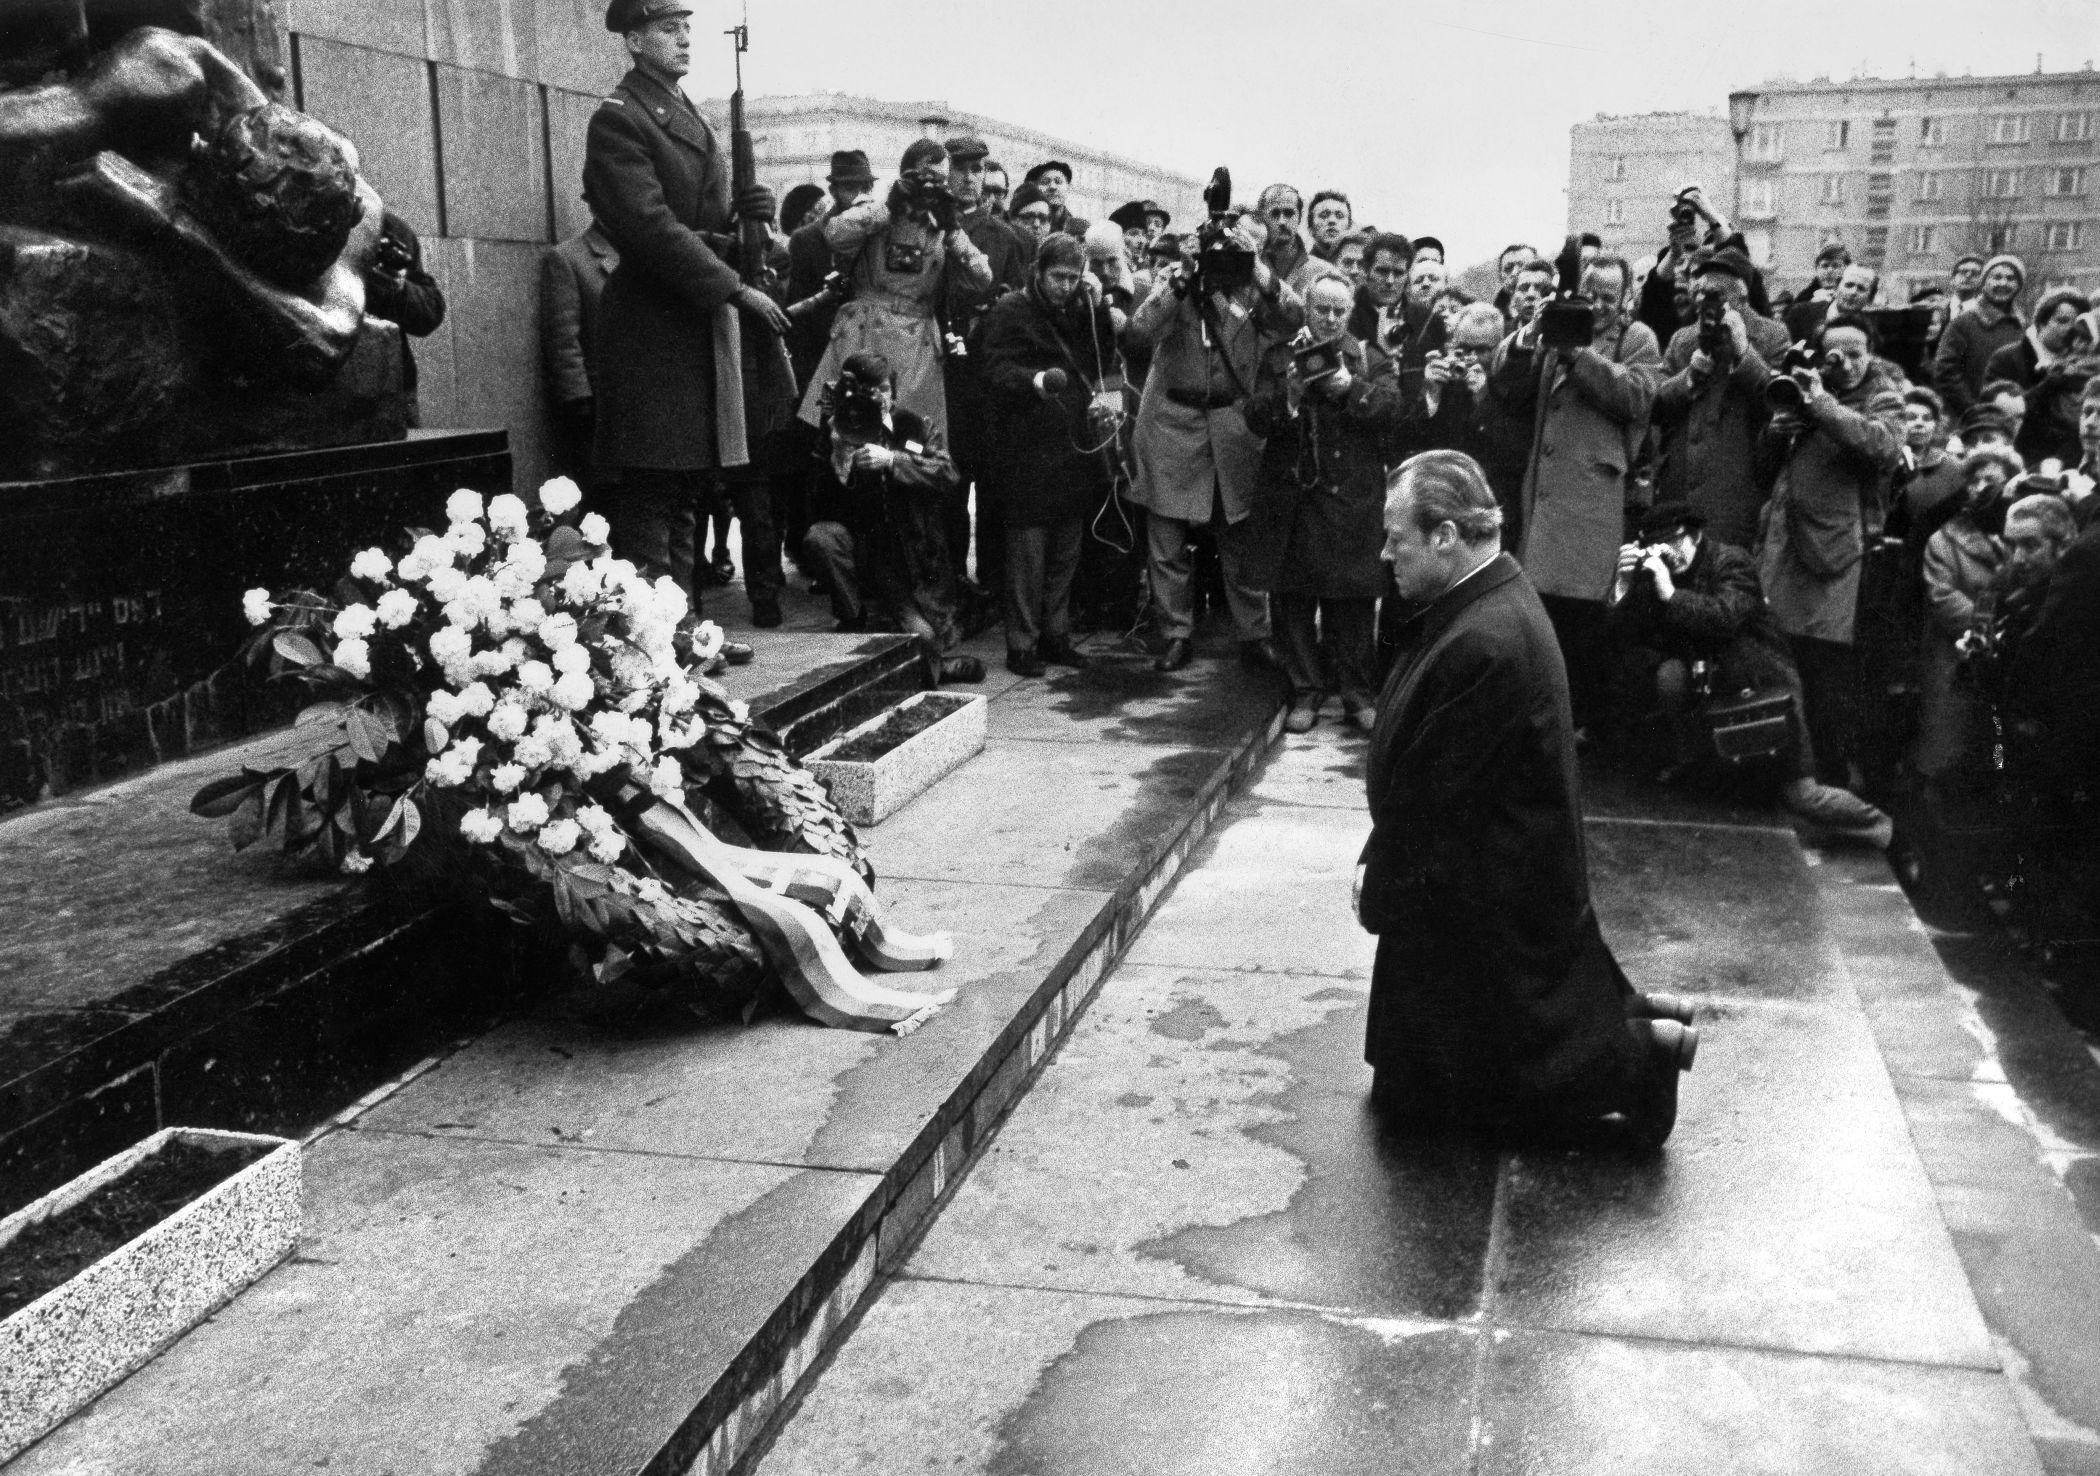 Chancellor Brandt at the Warsaw Ghetto Memorial